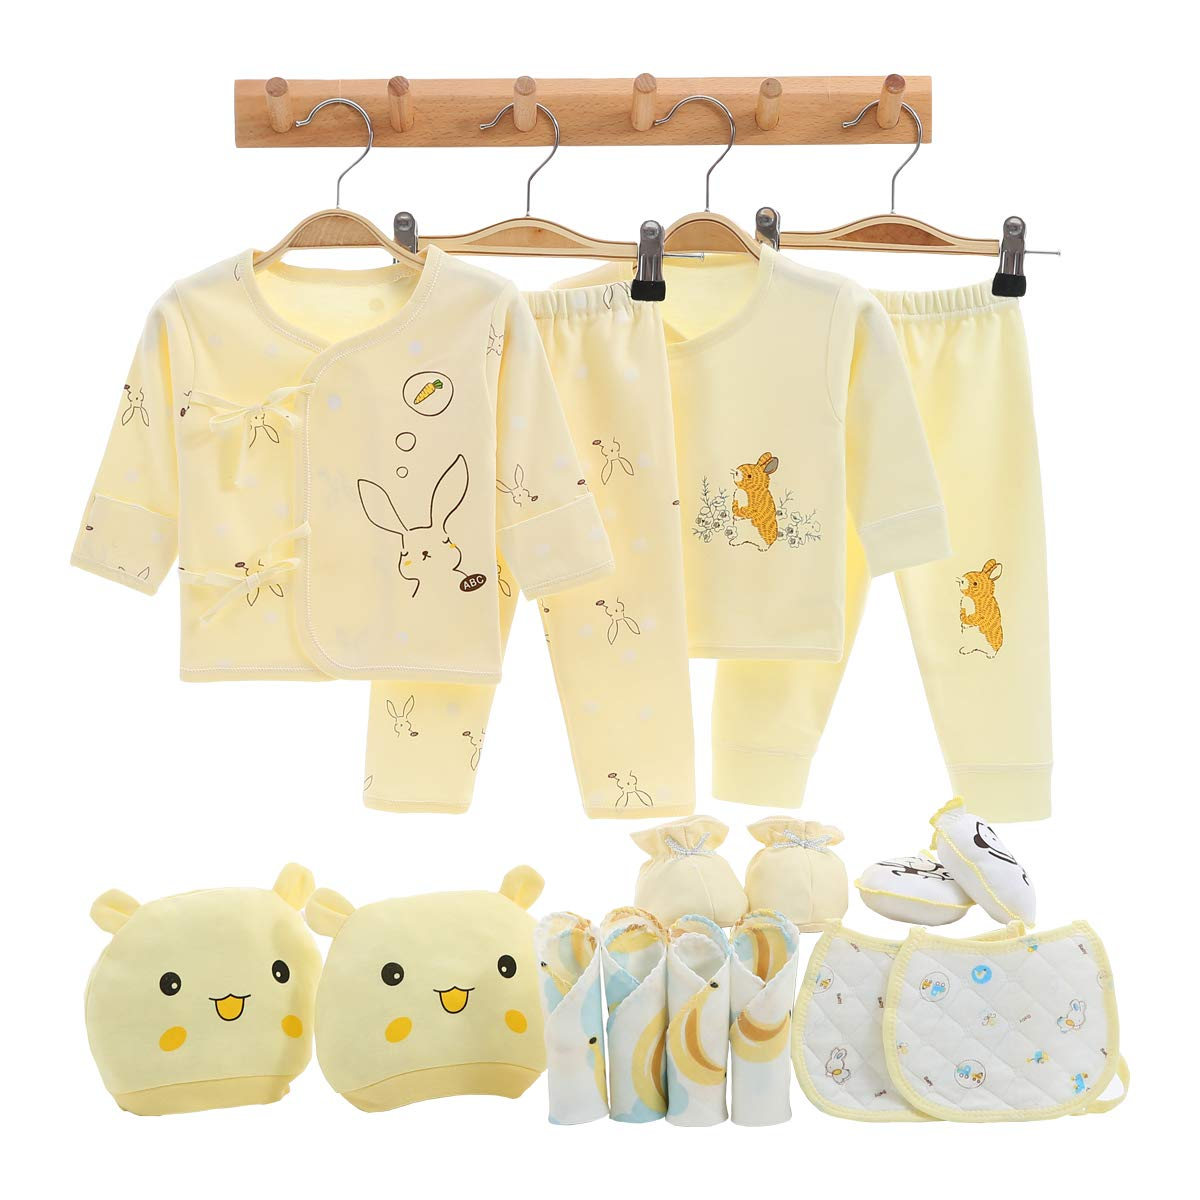 Newborn Girl Boy Clothes Baby Gifts Coming Home Outfits Essentials Stuff Yellow 0-3 Months by Smgslib